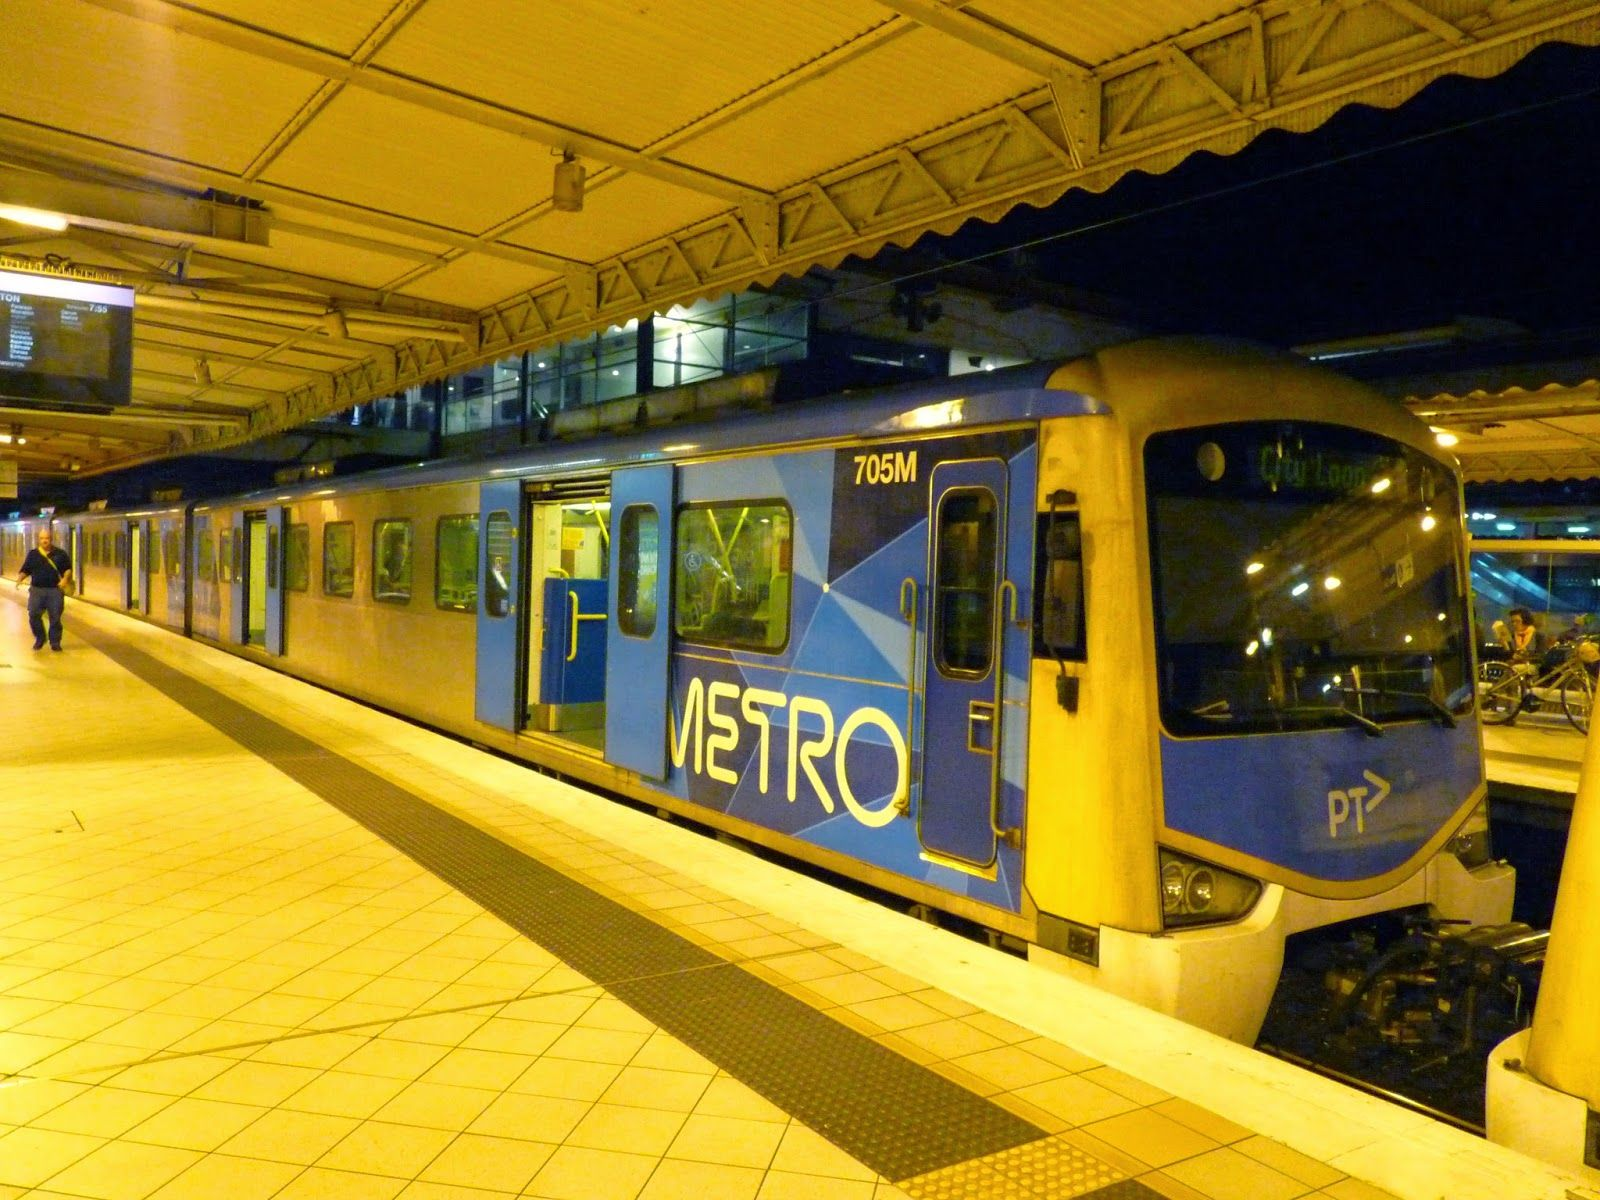 Metro Train Melbourne, Australia Interestingtrains.blogspot.com Epsilon's Train and Tram blog